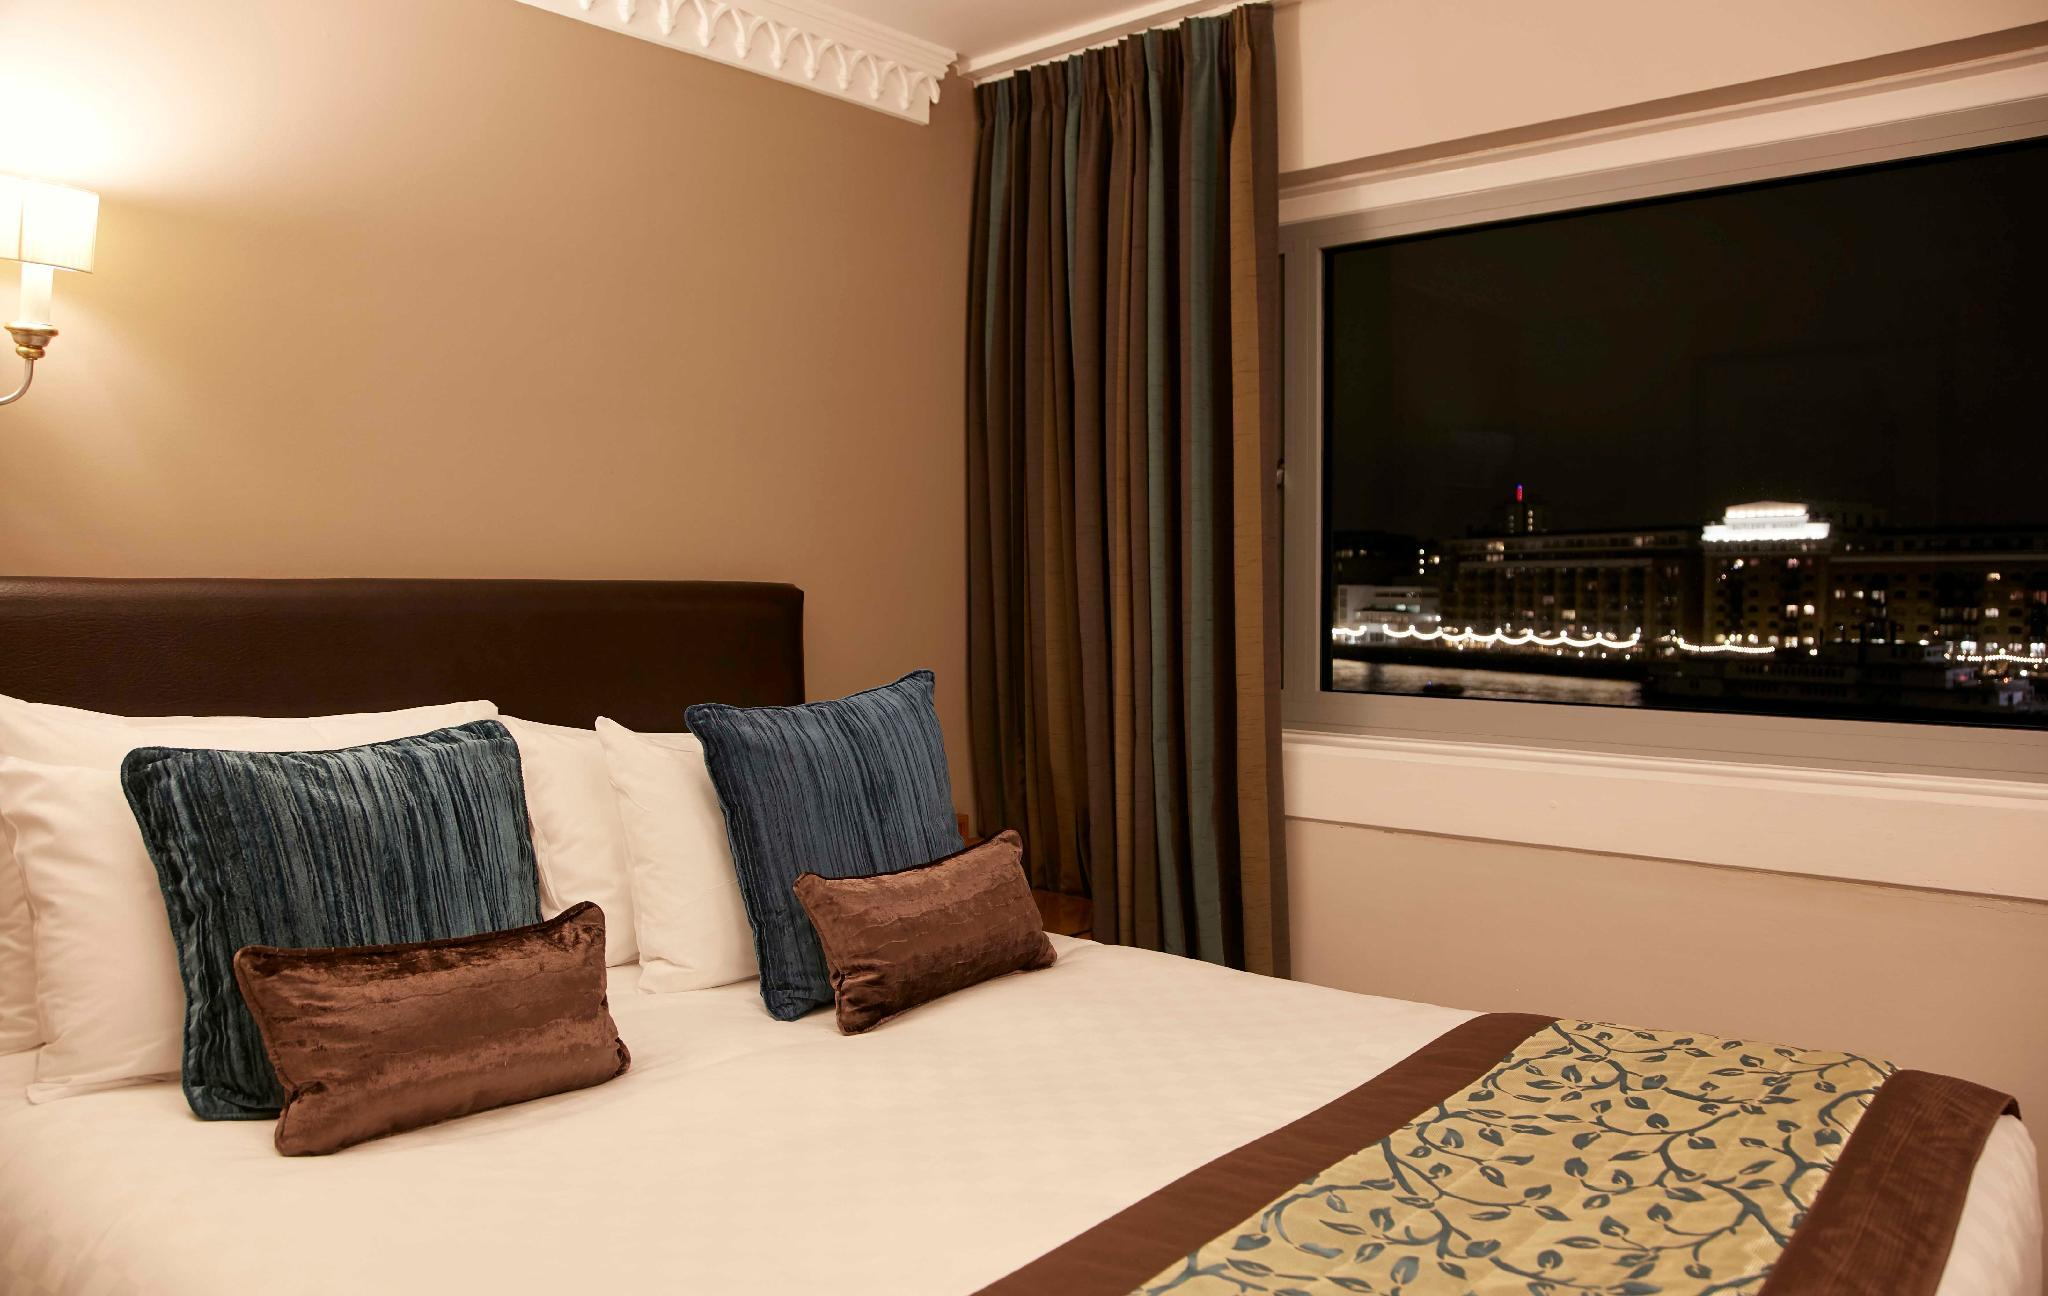 The Tower Hotel, London